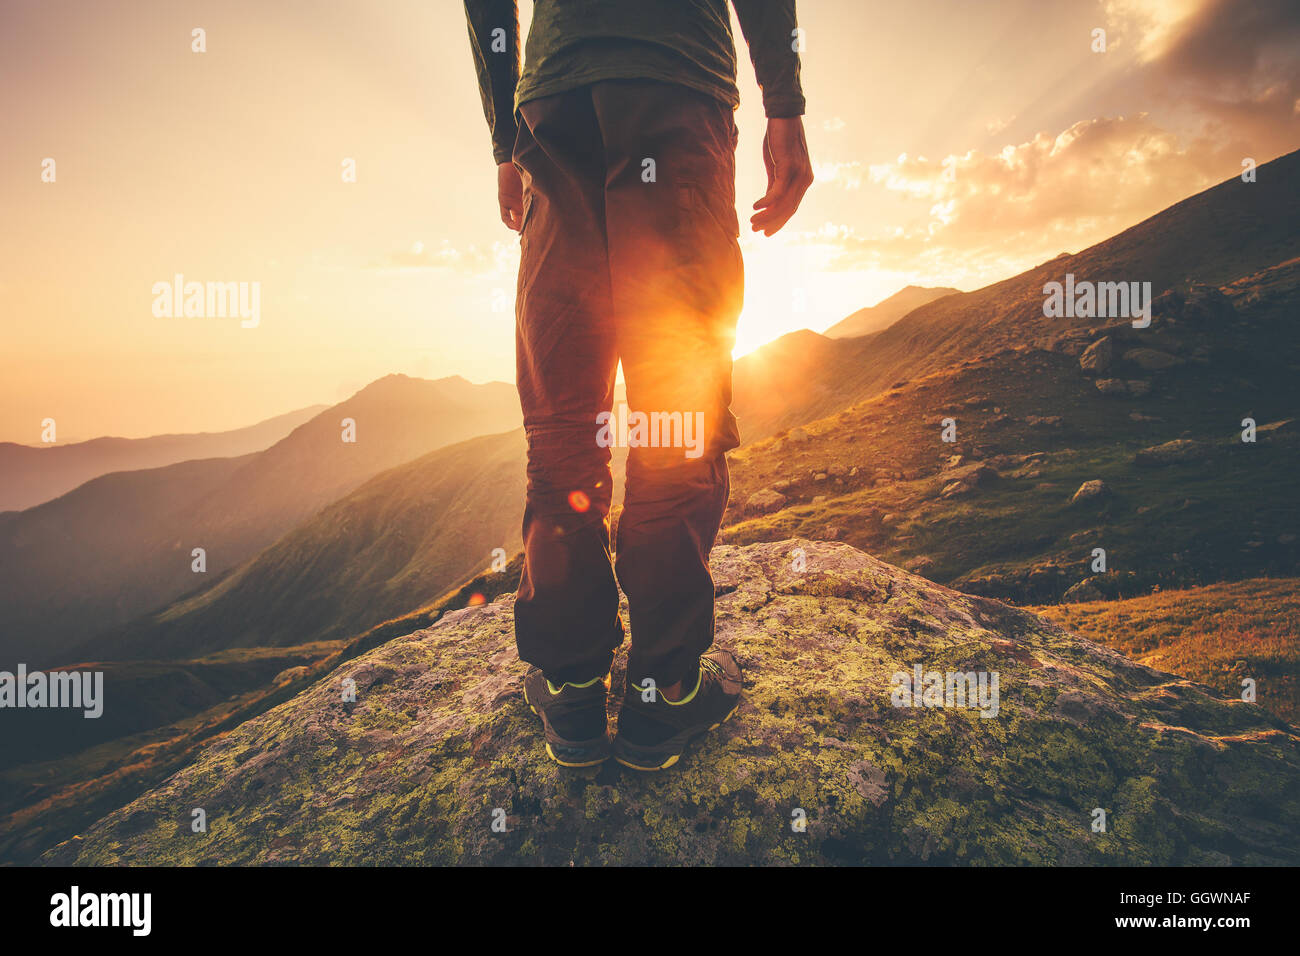 Young Man Traveler feet standing alone with sunset mountains on background Lifestyle Travel concept outdoor Stock Photo